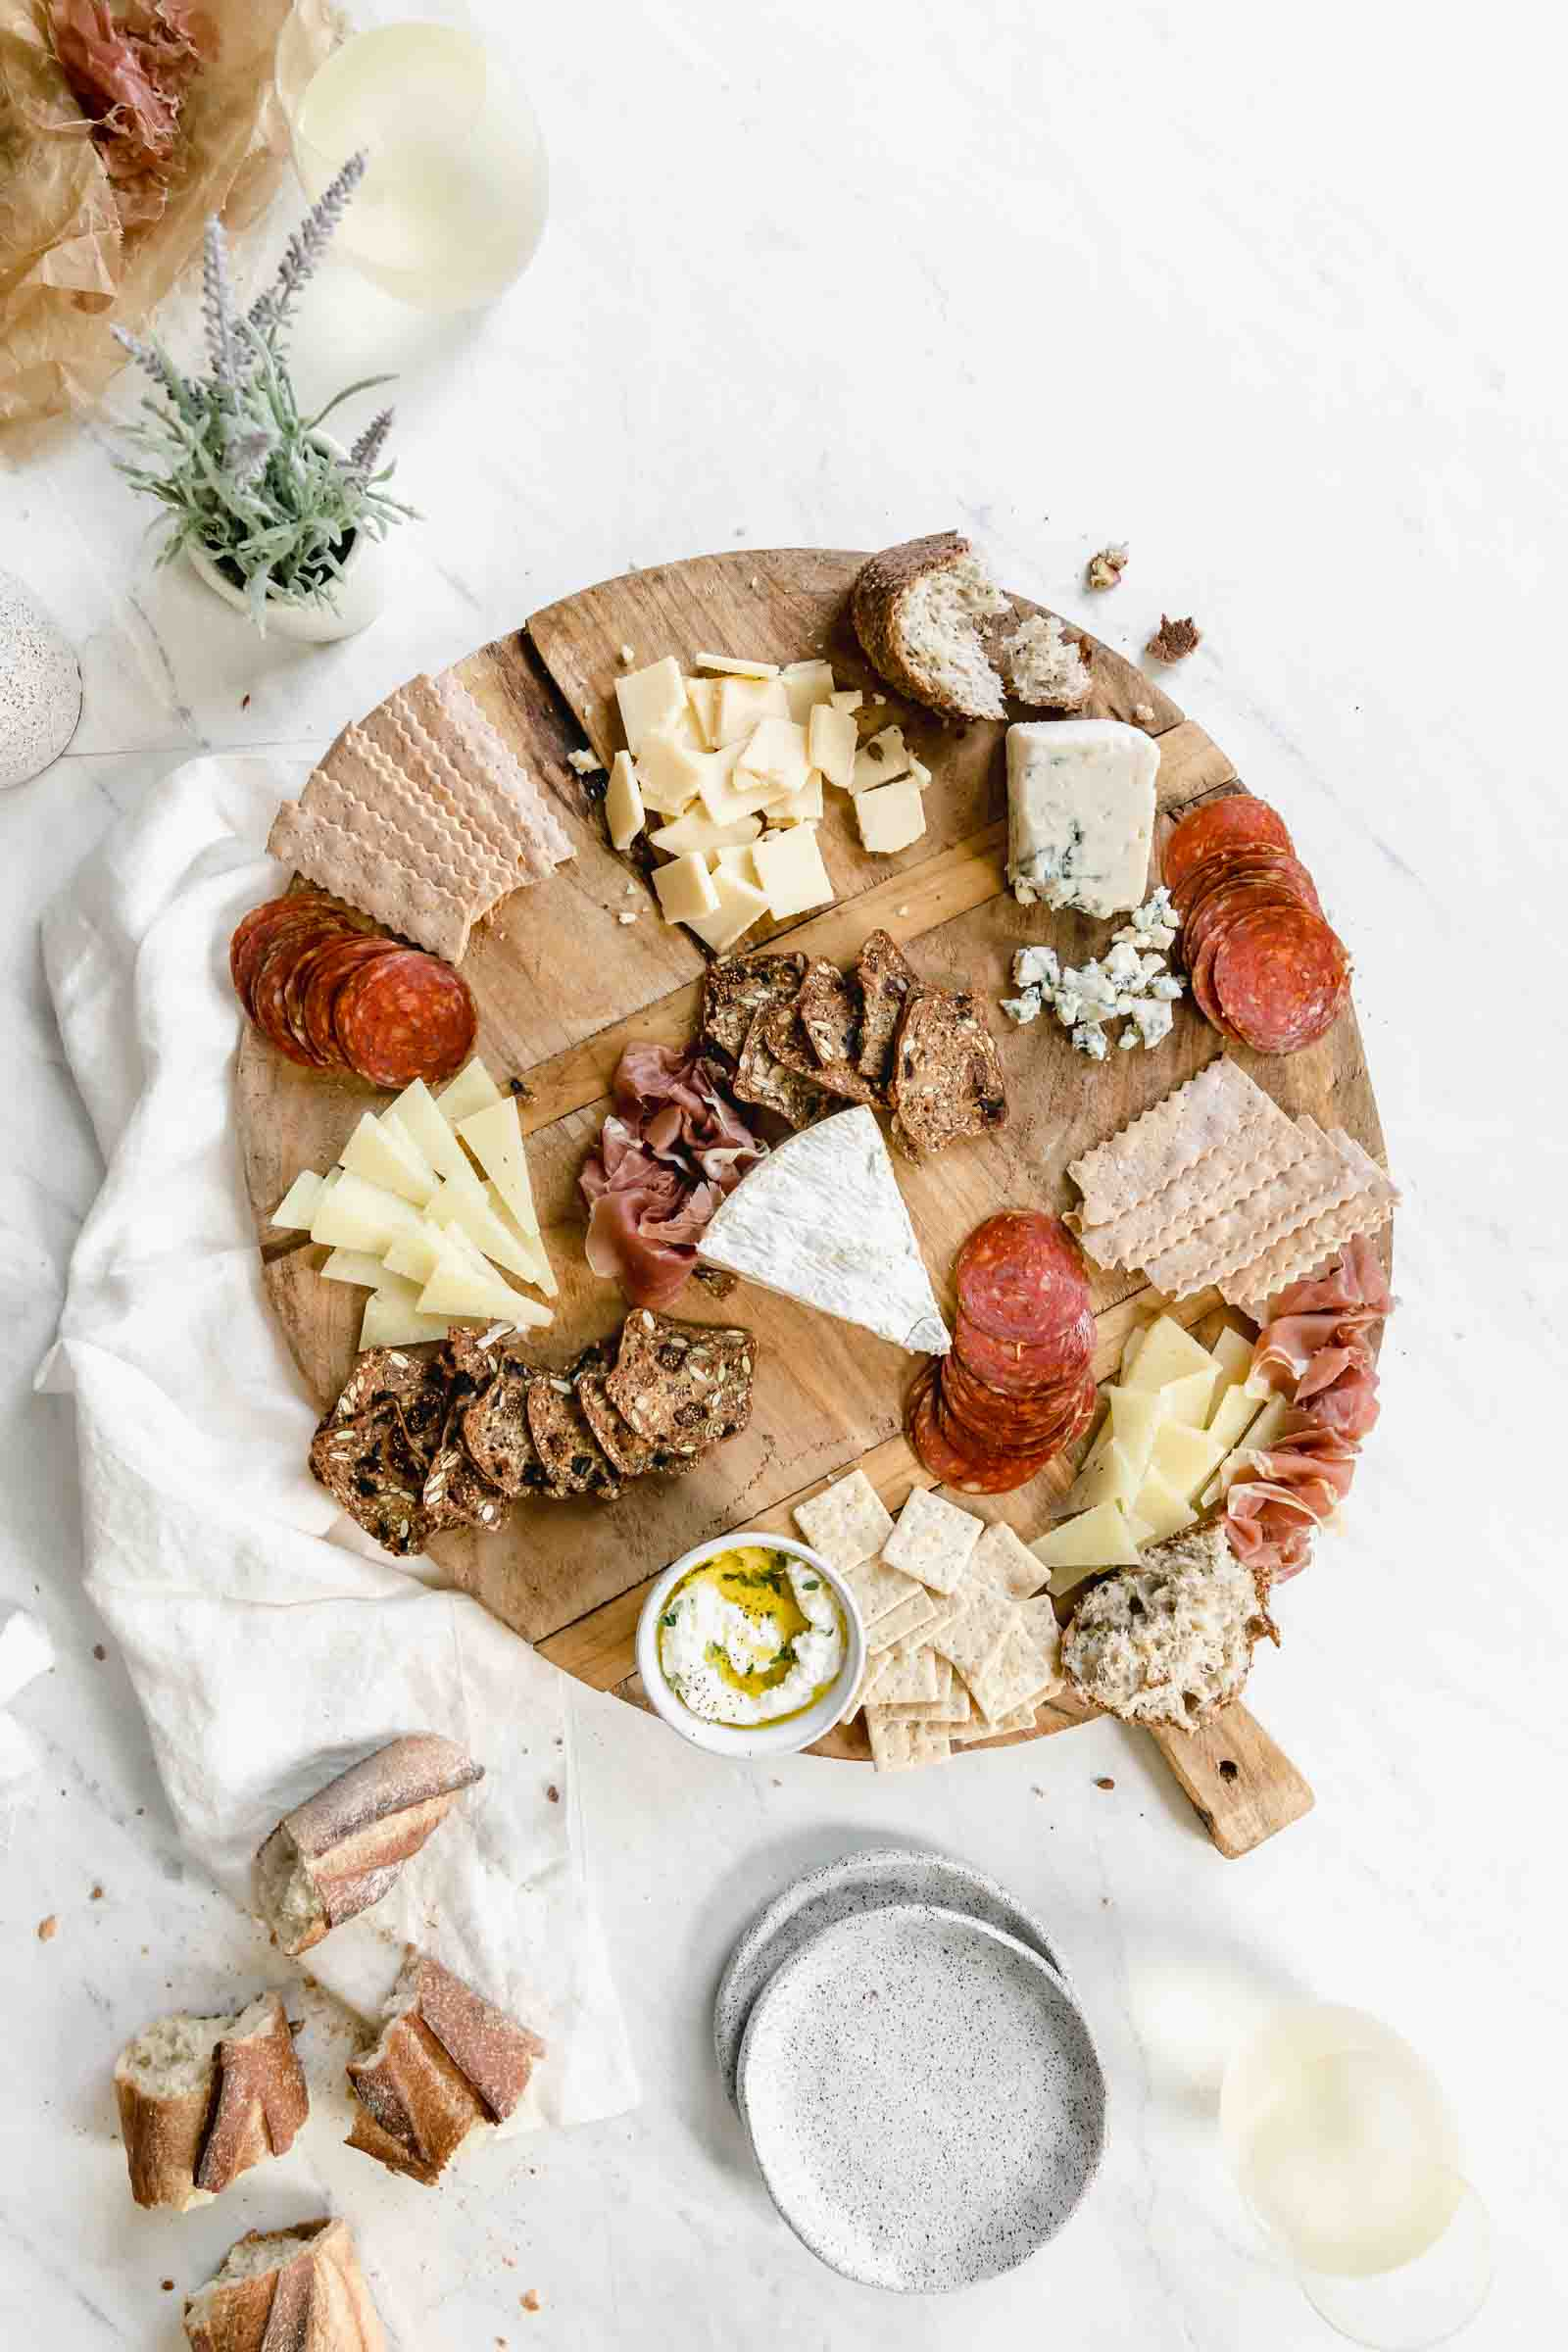 add variety of meats to cheese and and crackers on wooden board